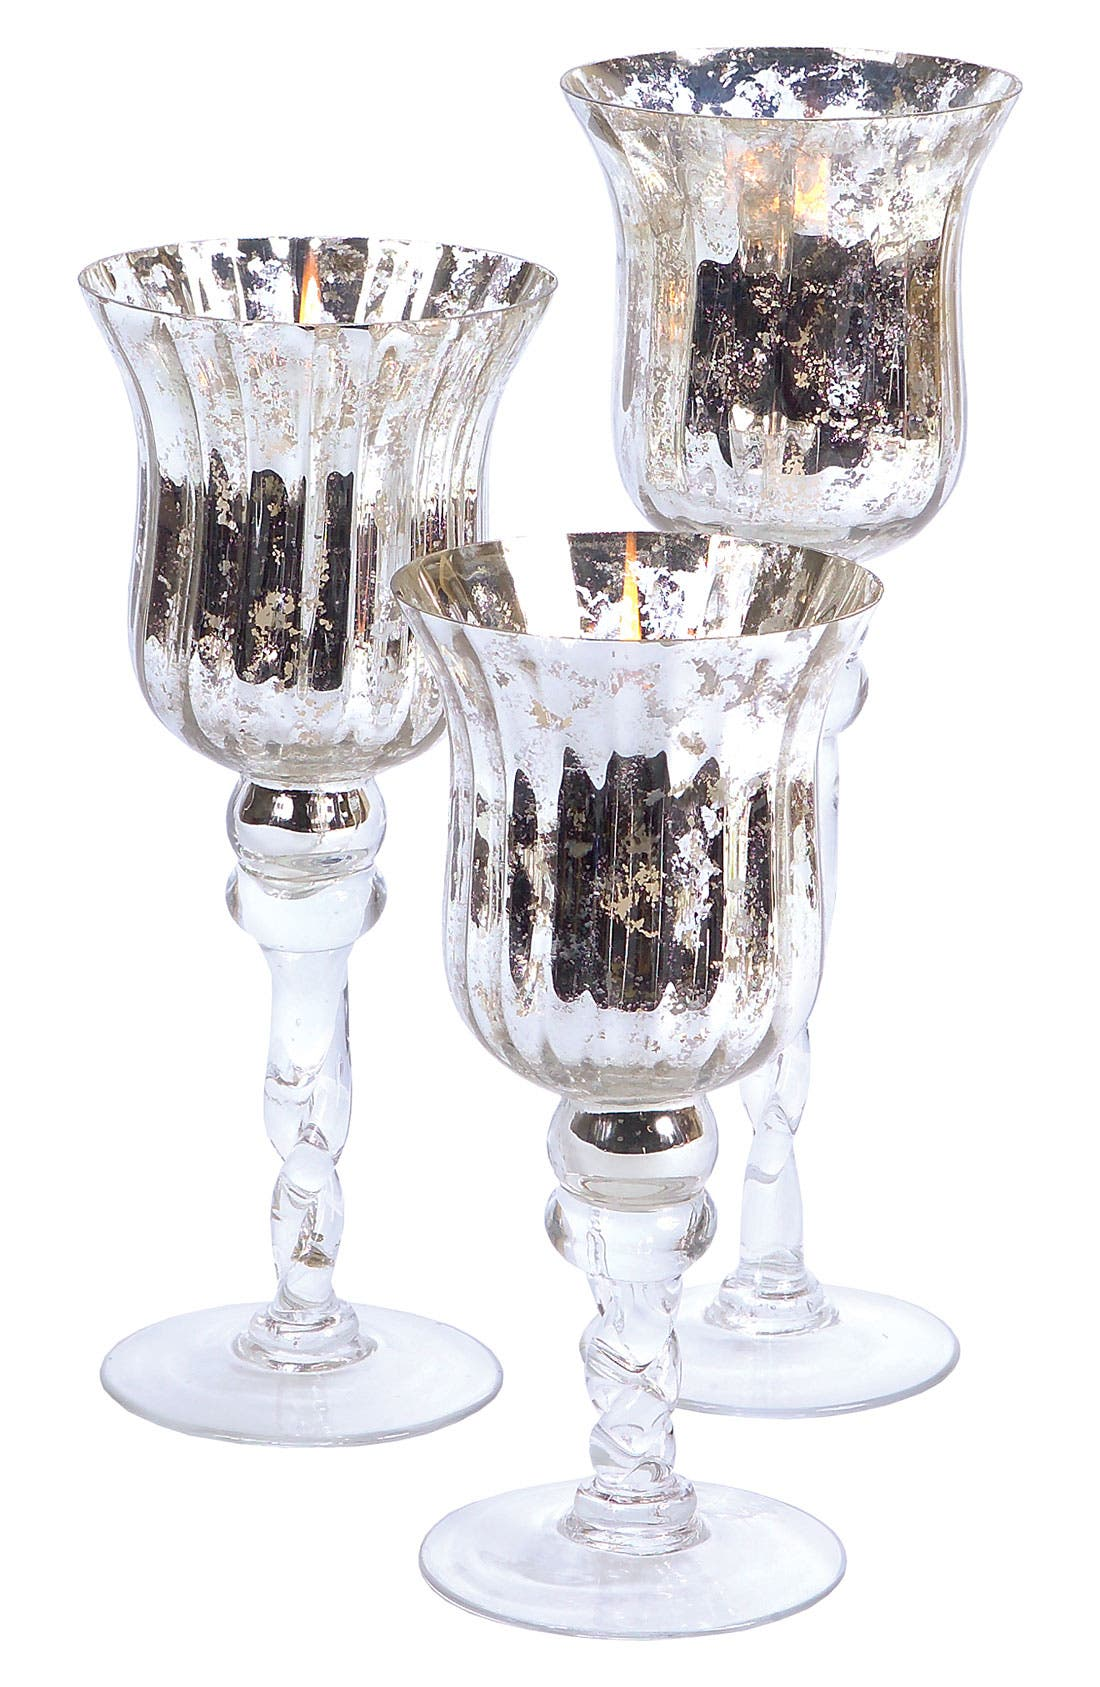 Alternate Image 1 Selected - Melrose Gifts Mercury Glass Candle Holder